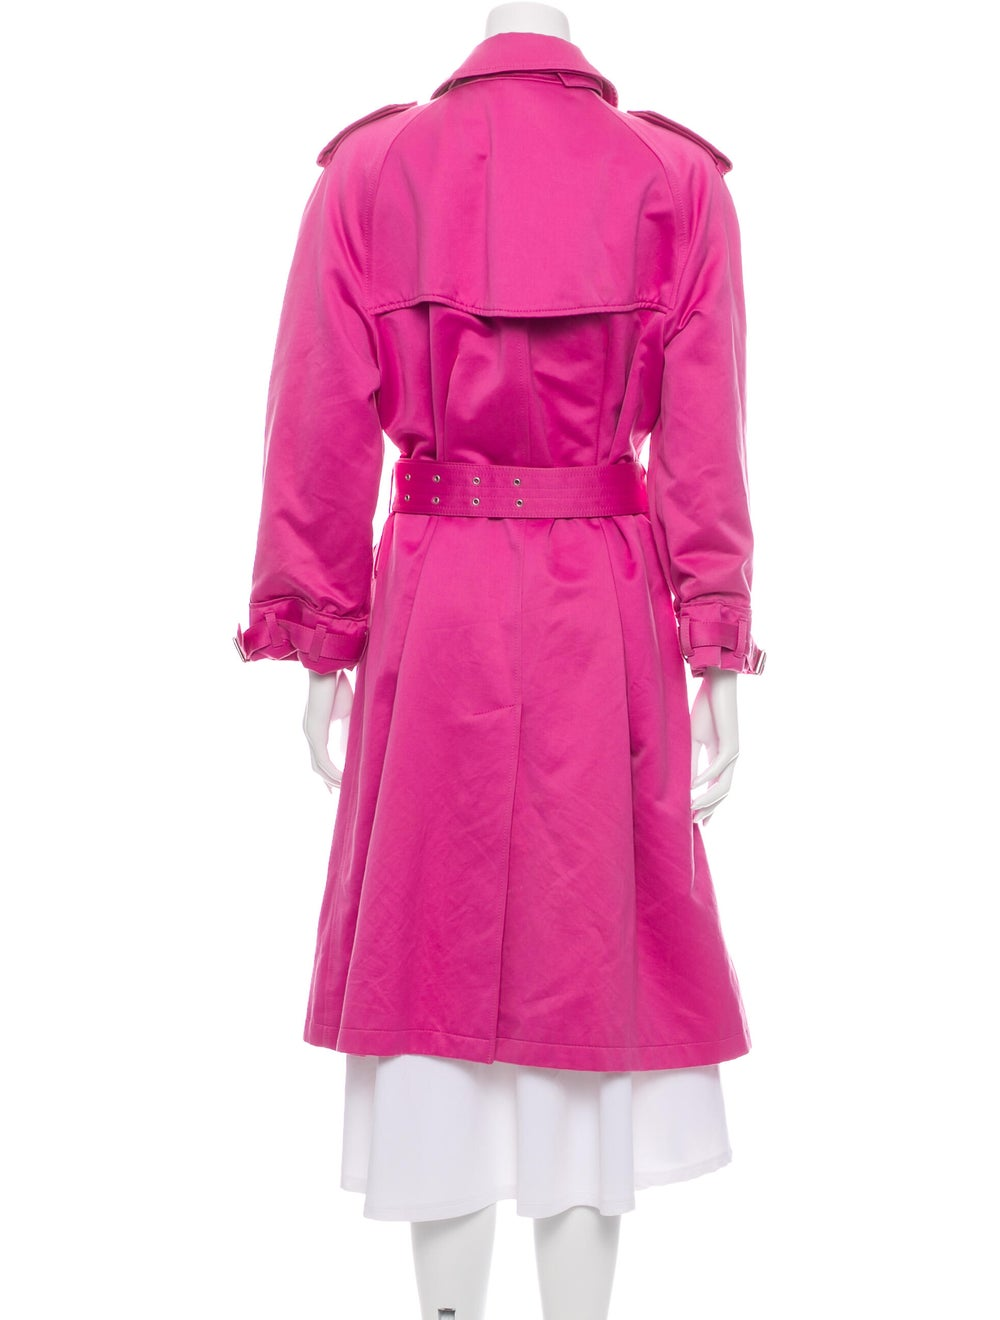 Burberry London Trench Coat Pink - image 3